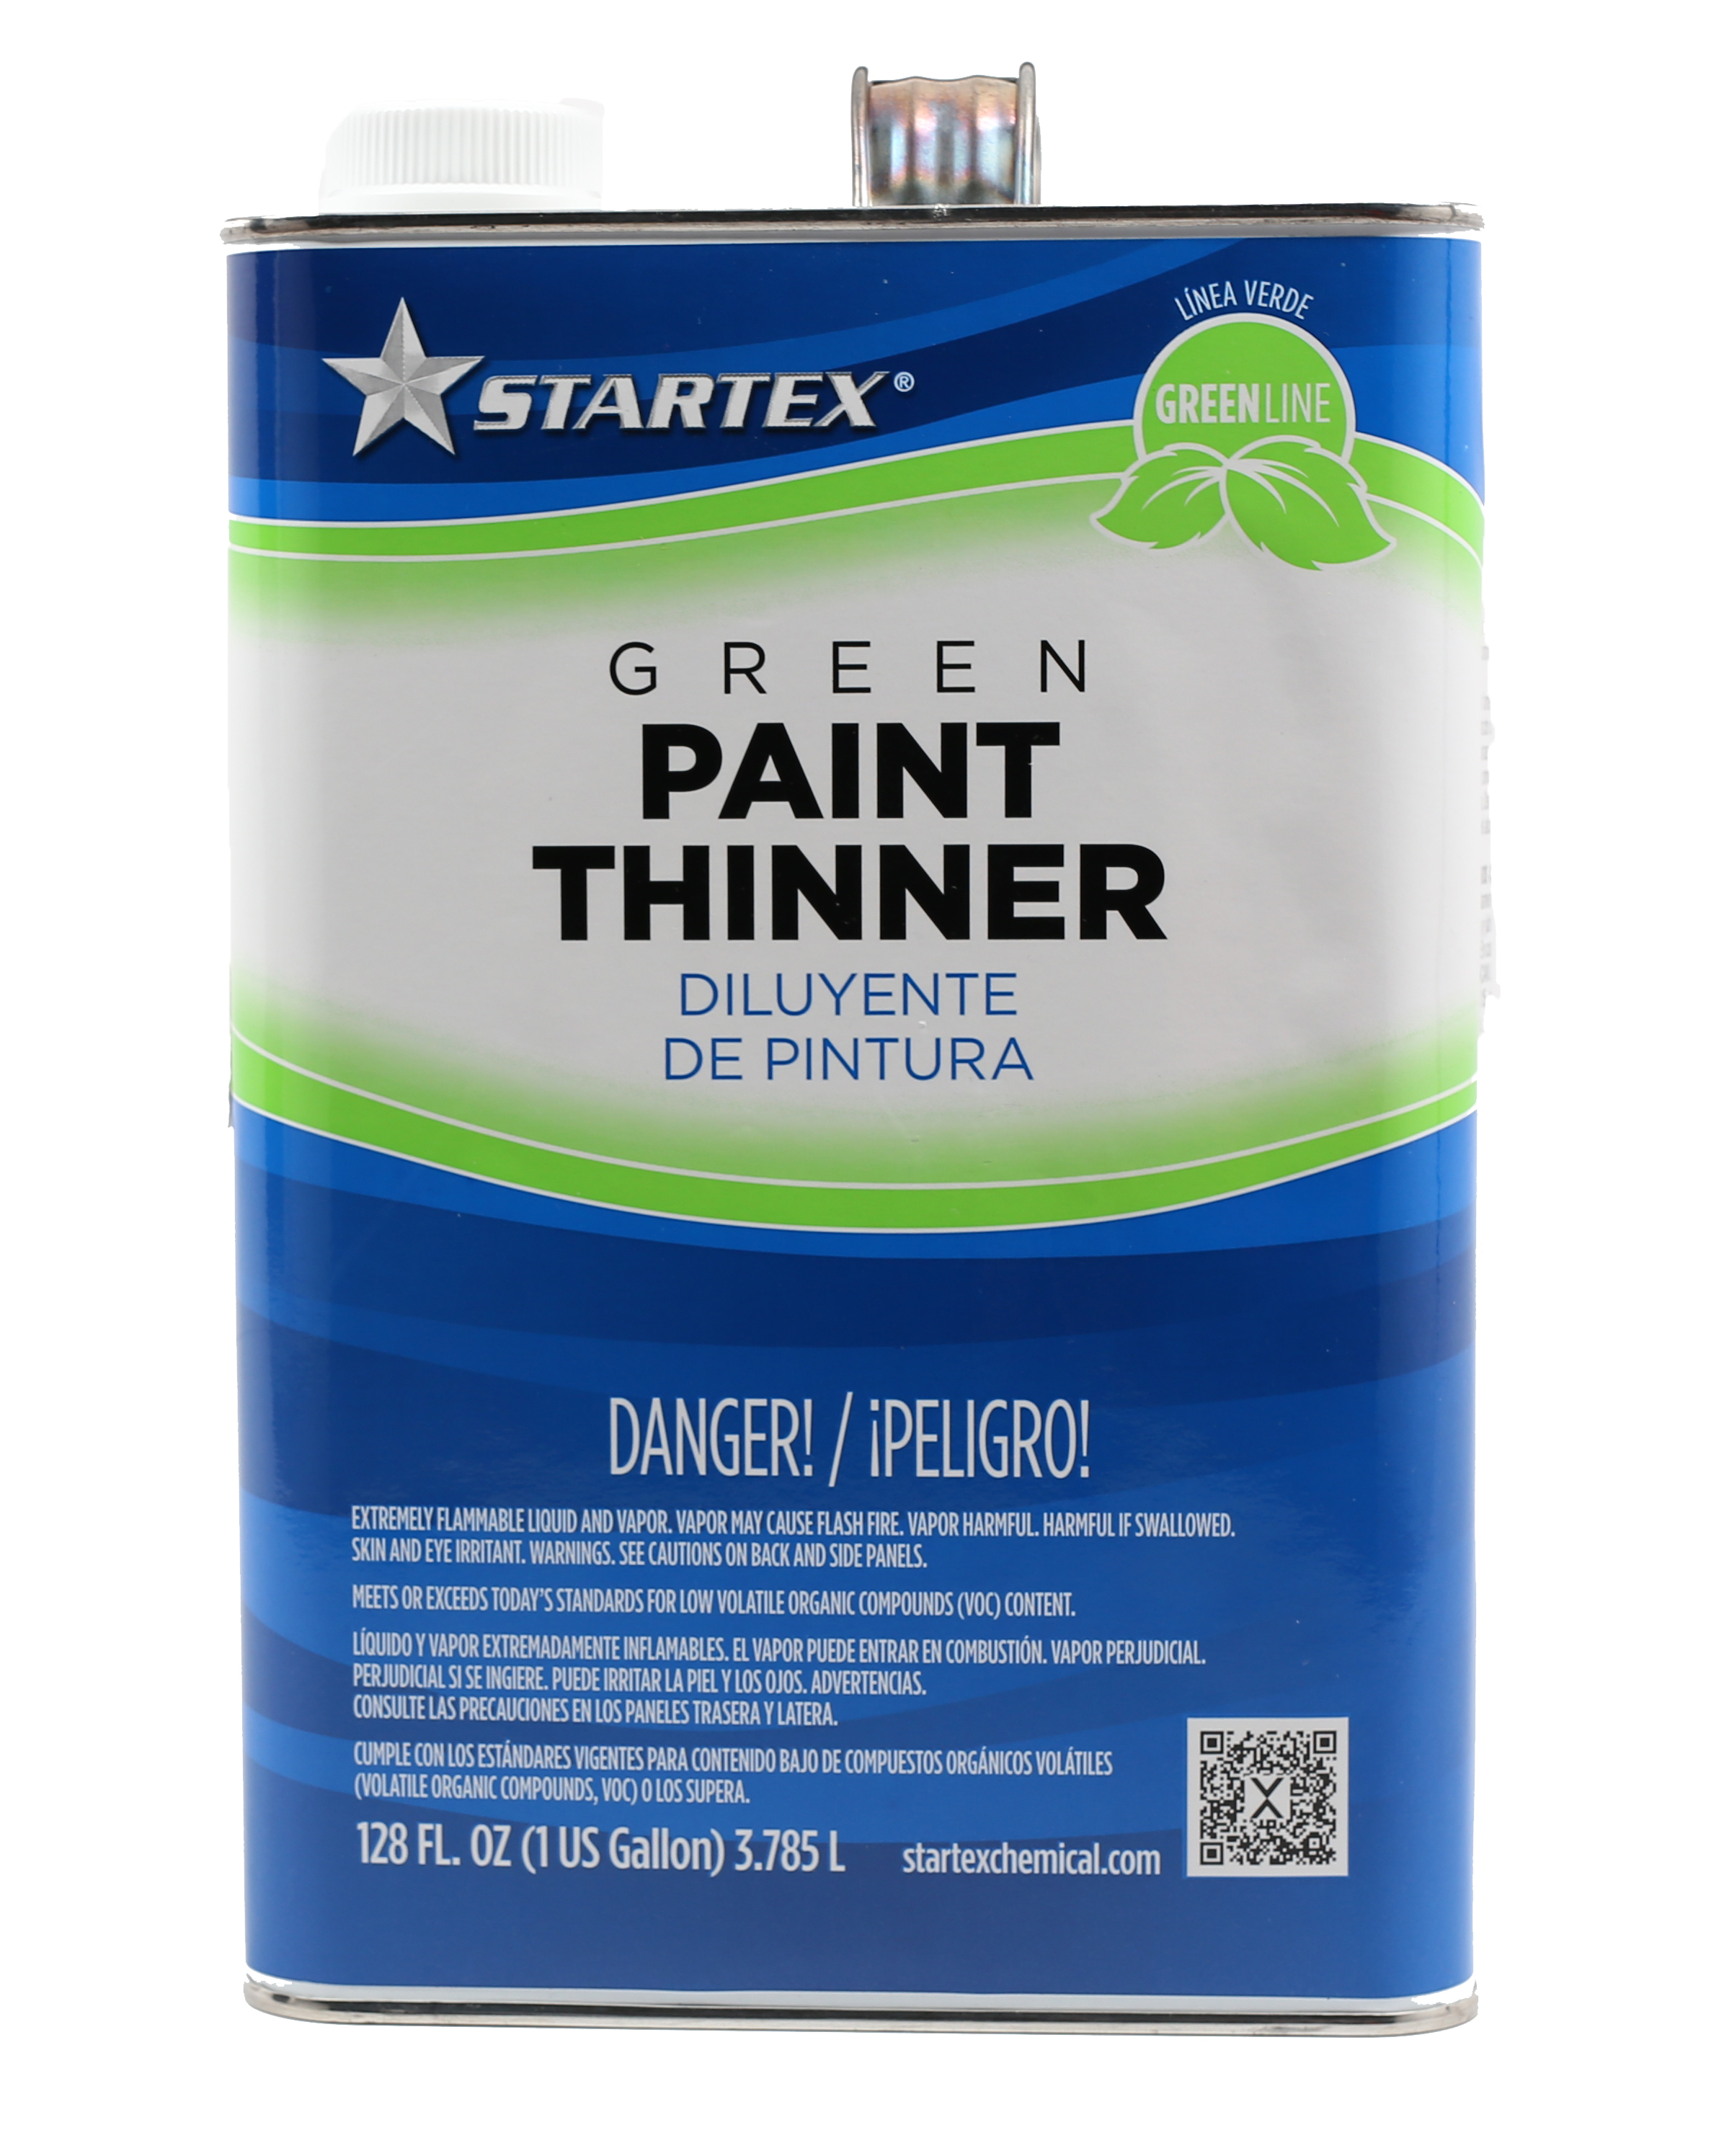 CARB VOC compliant green paint thinner